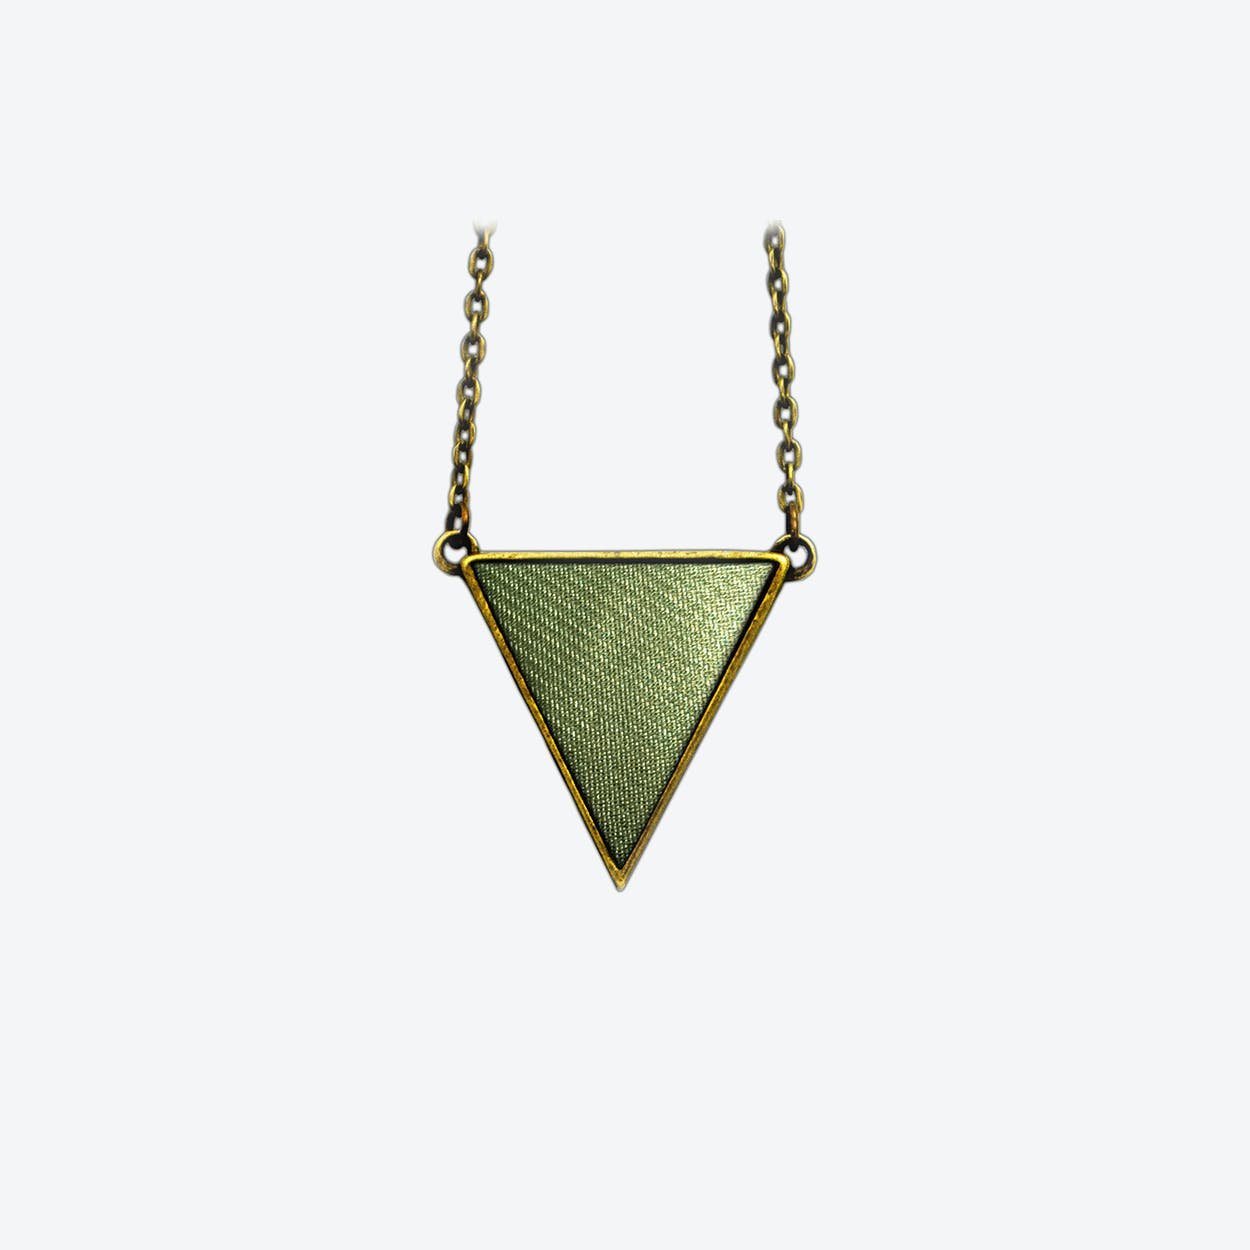 Leather Triangle Necklace in Nymph Green